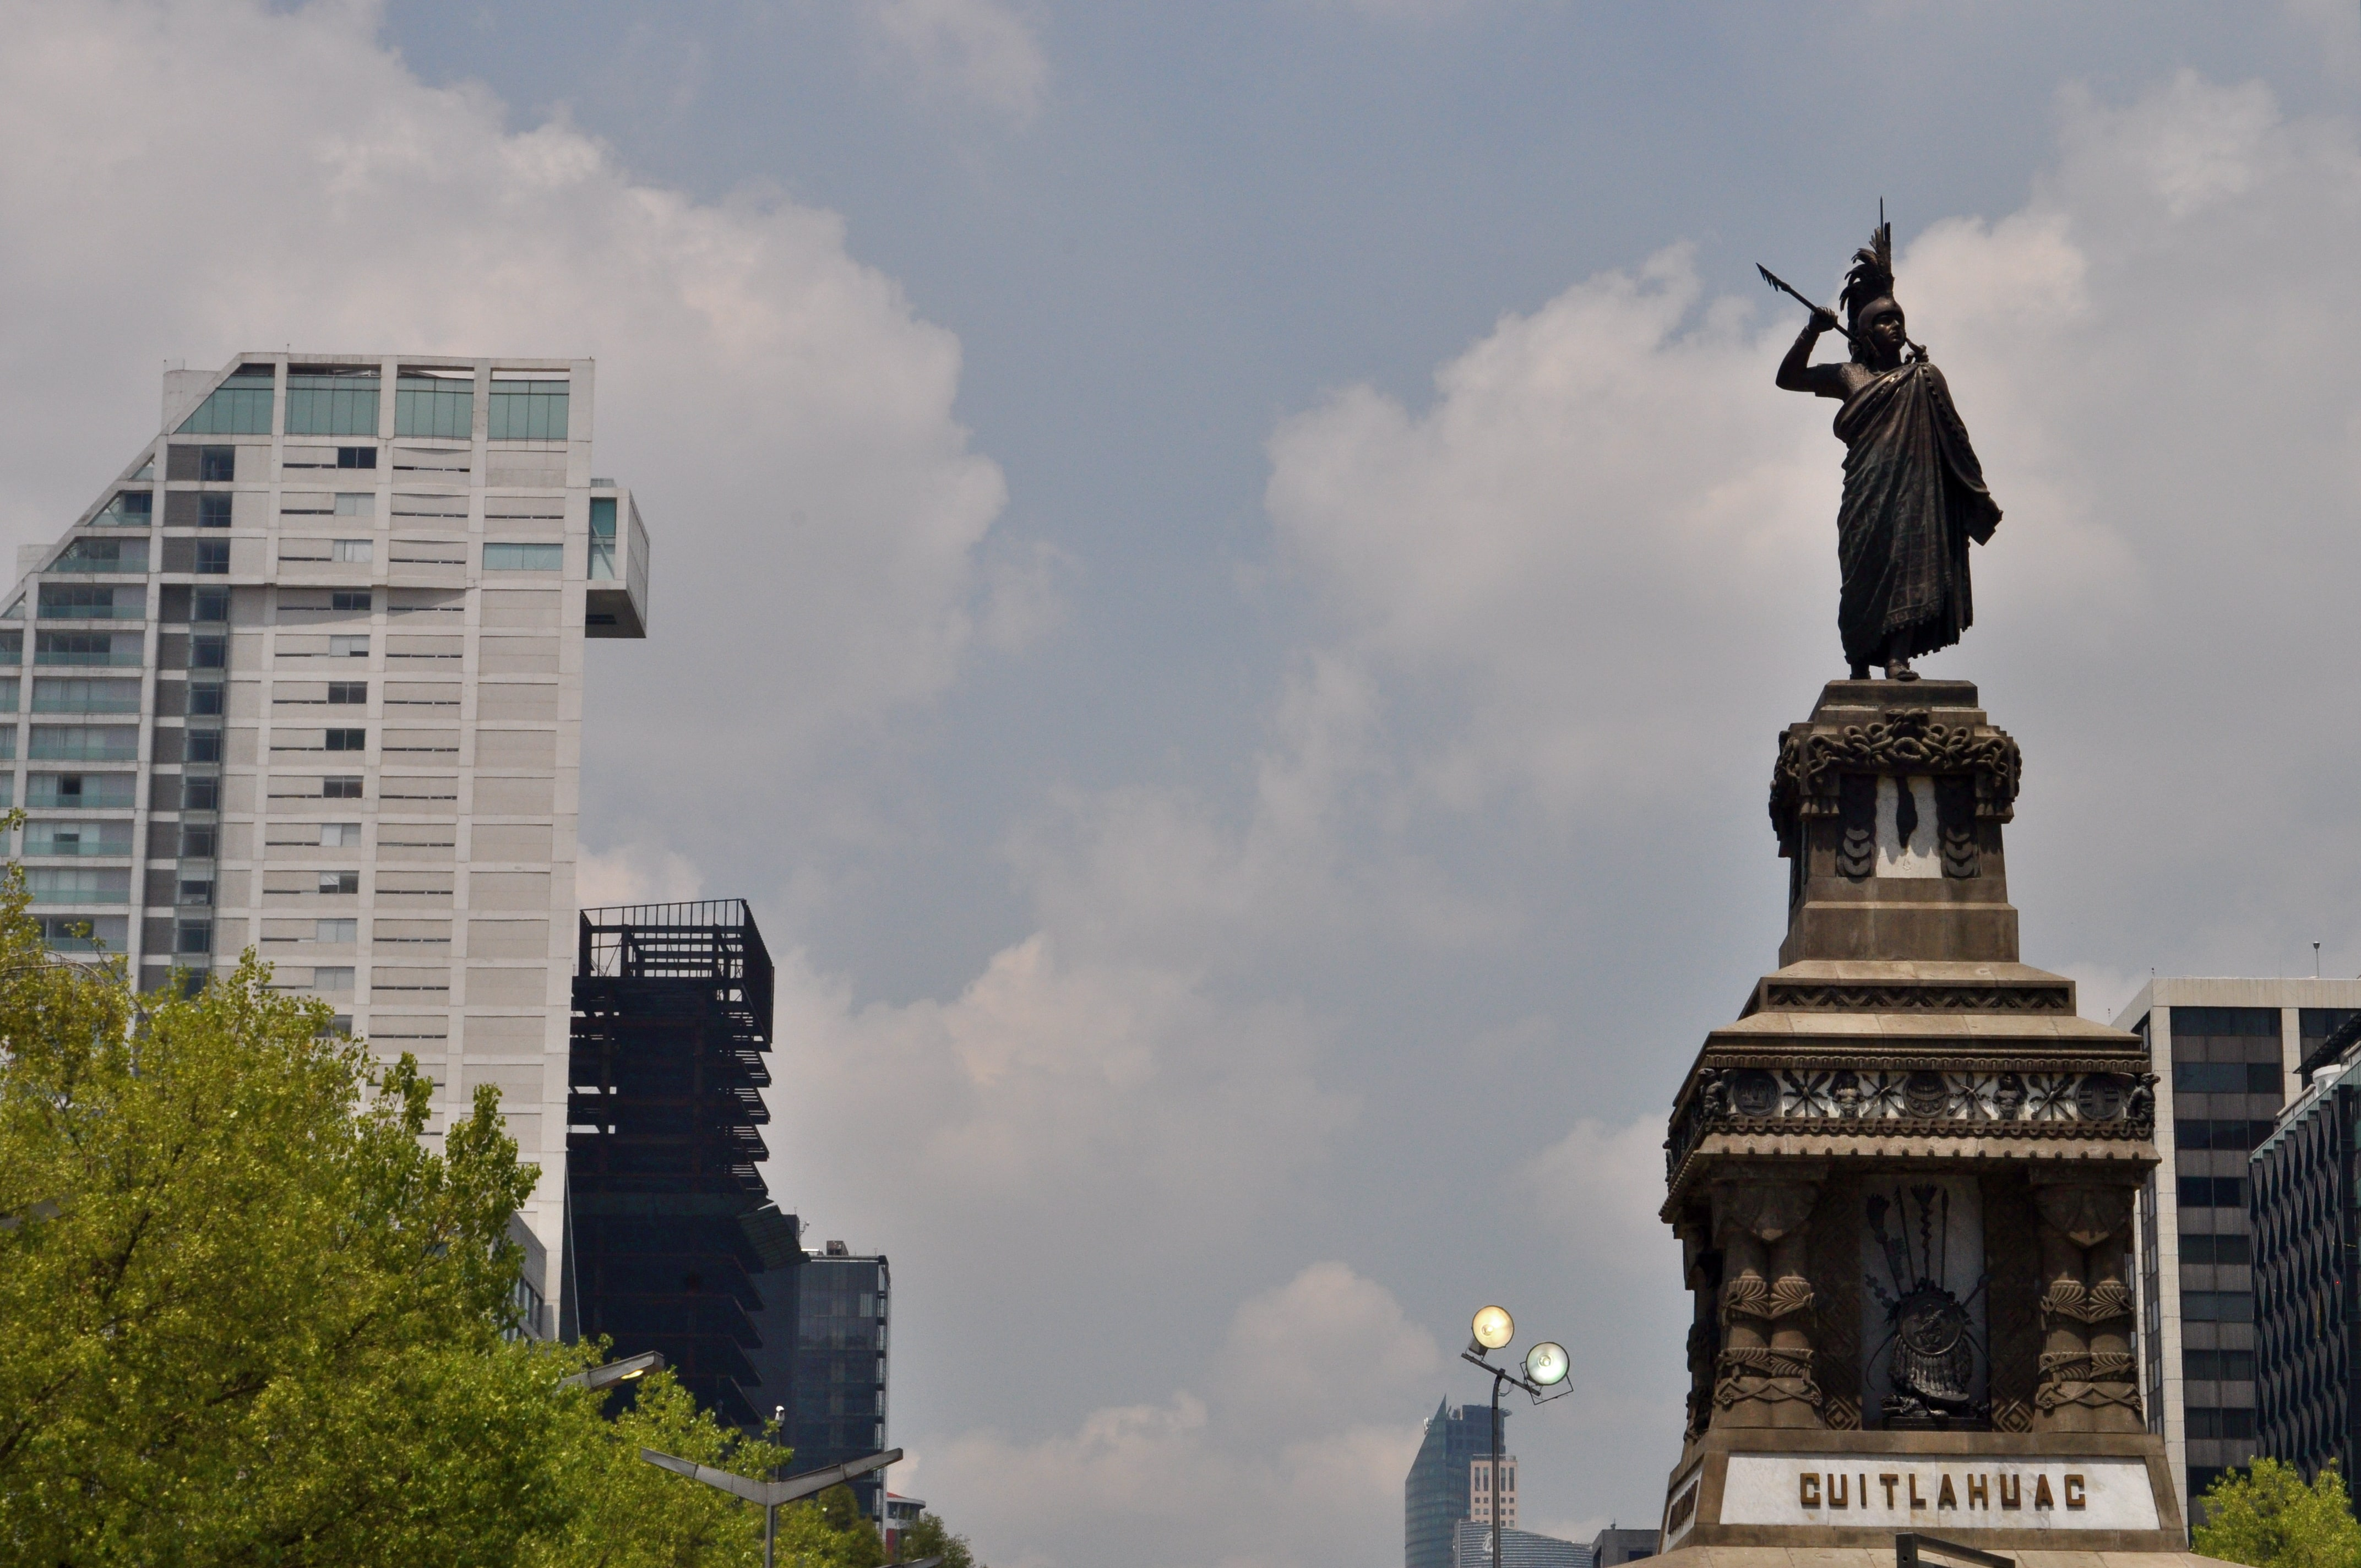 TripAdvisor Mexico City loves activities along Paseo de la Reforma